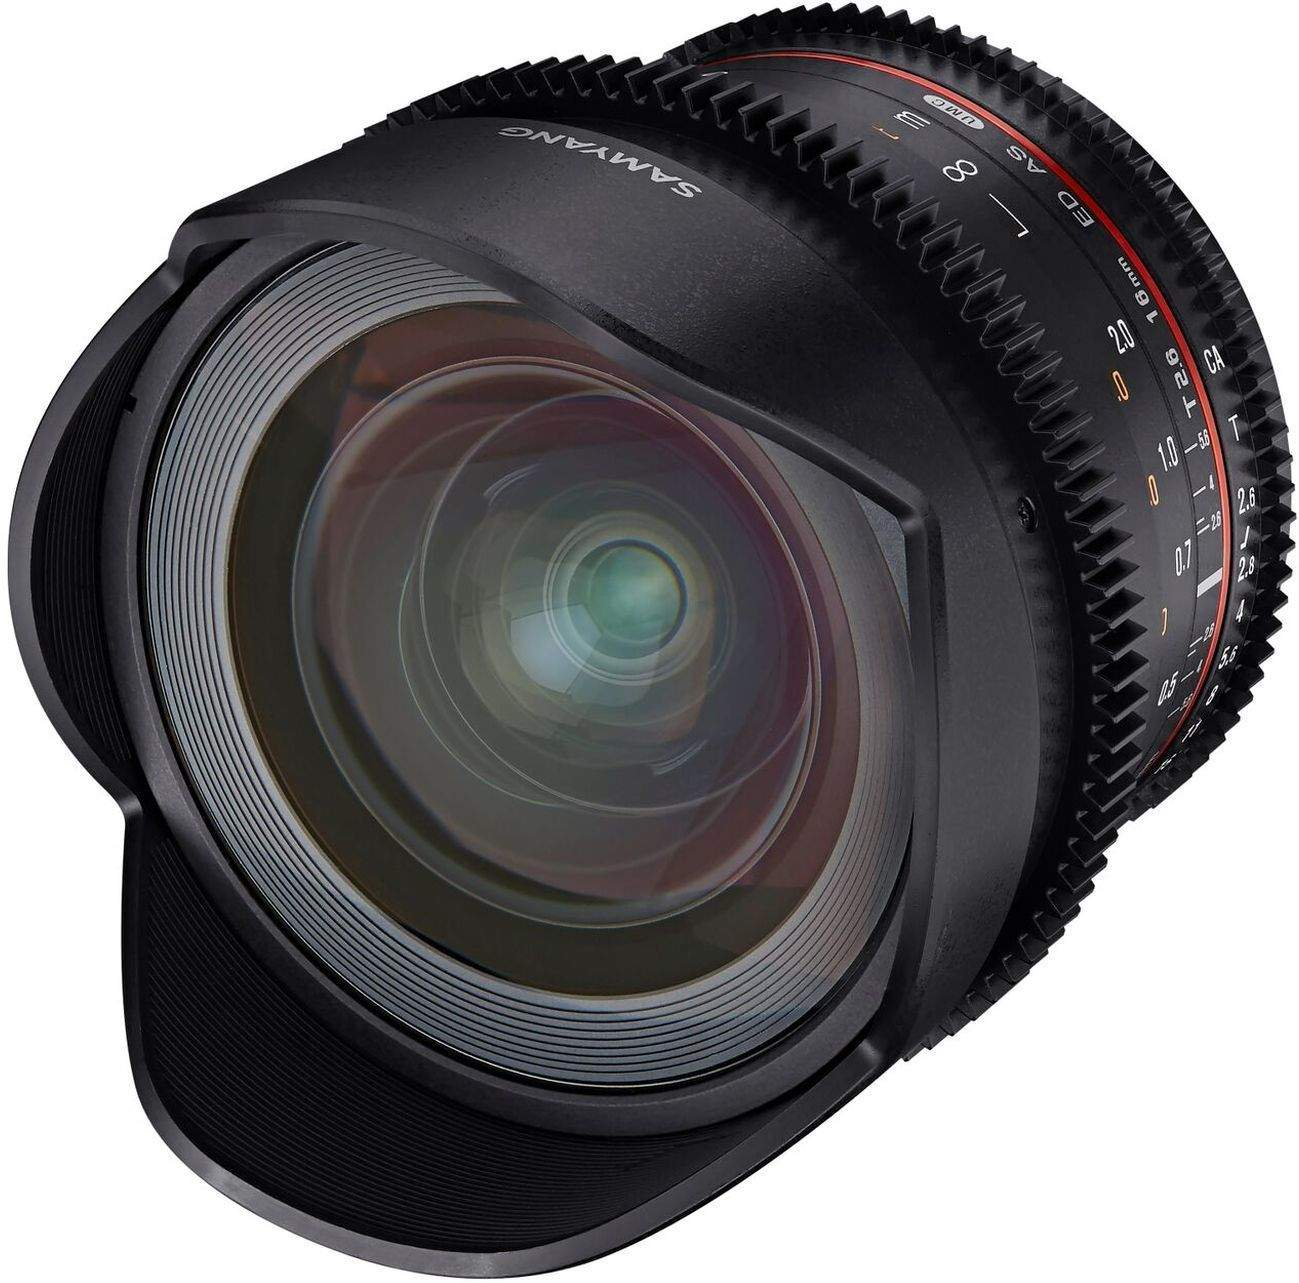 16mm T2.6 VDSLR UMC II Sony A Full Frame